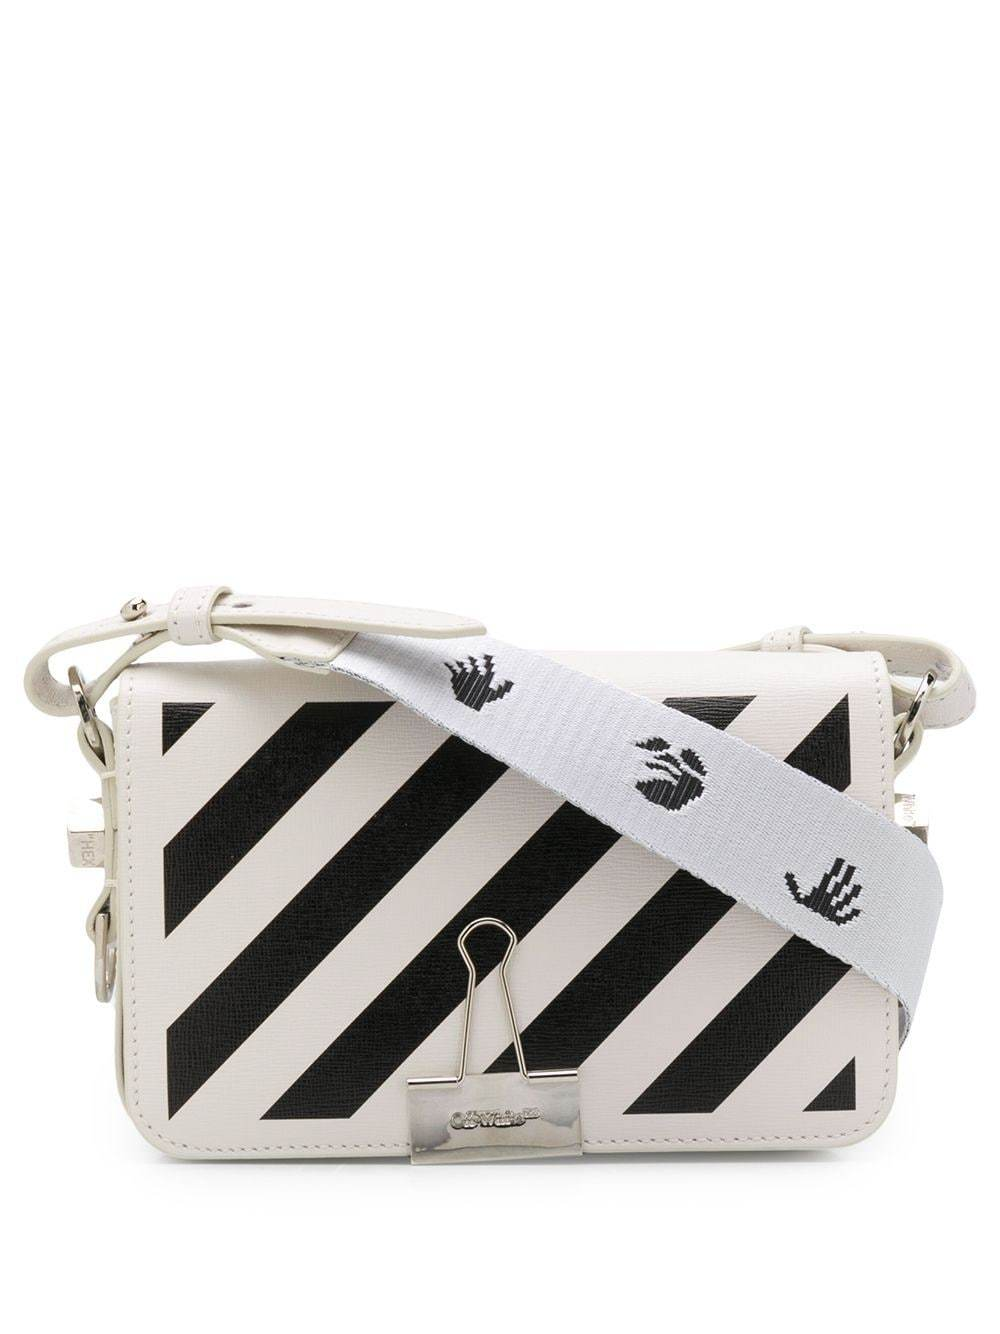 OFF-WHITE mini flap bag white/black